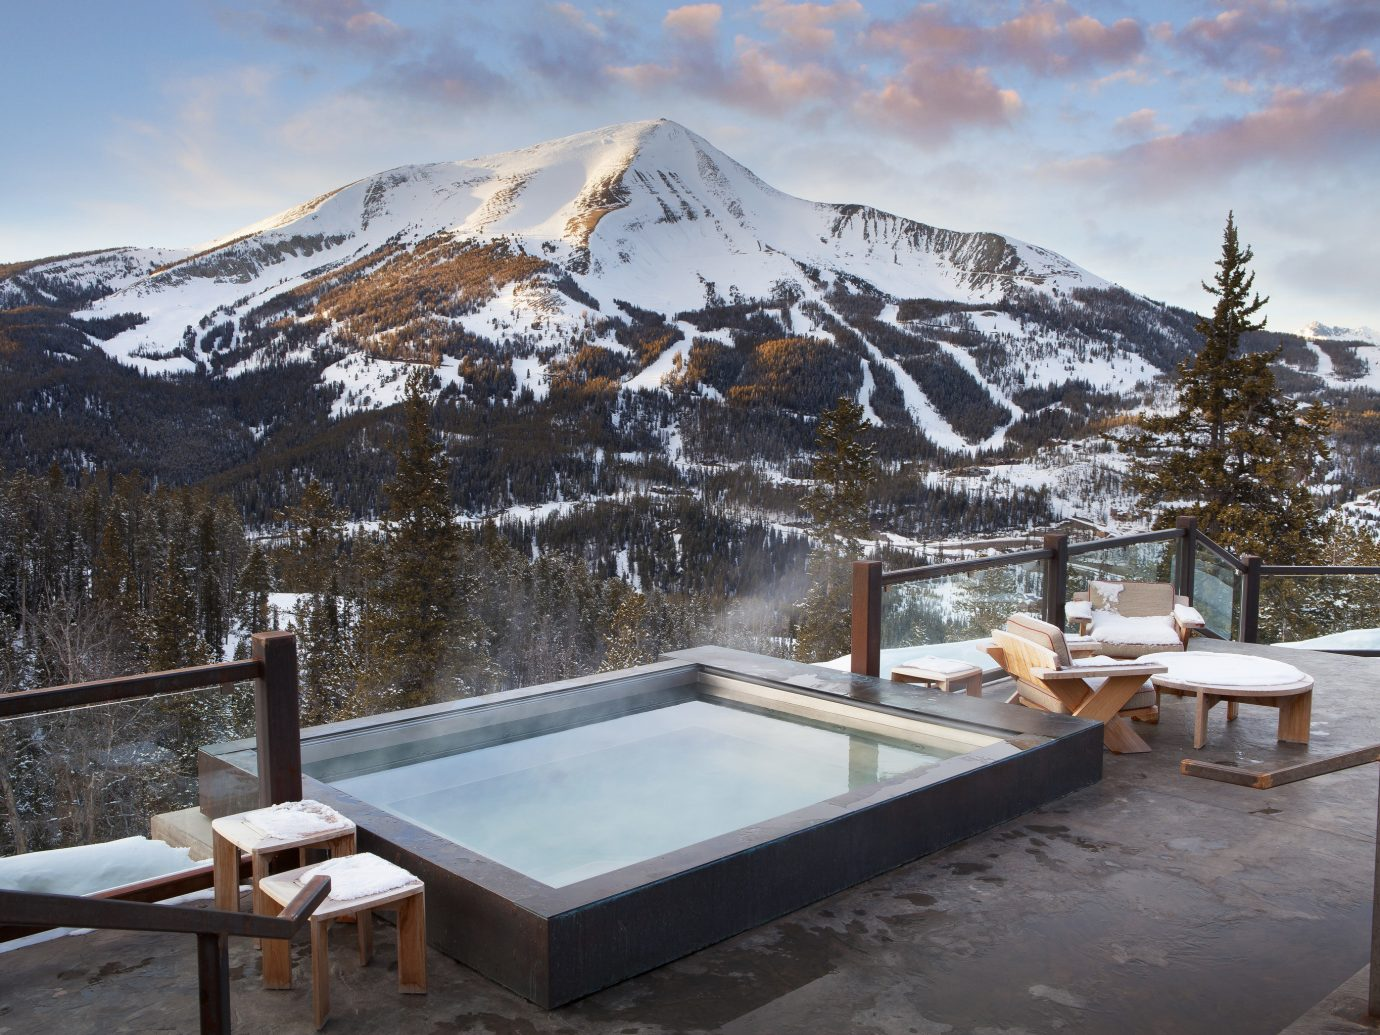 Beauty Hotels Luxury Travel Mountains + Skiing sky outdoor snow Winter weather mountain season Resort mountain range